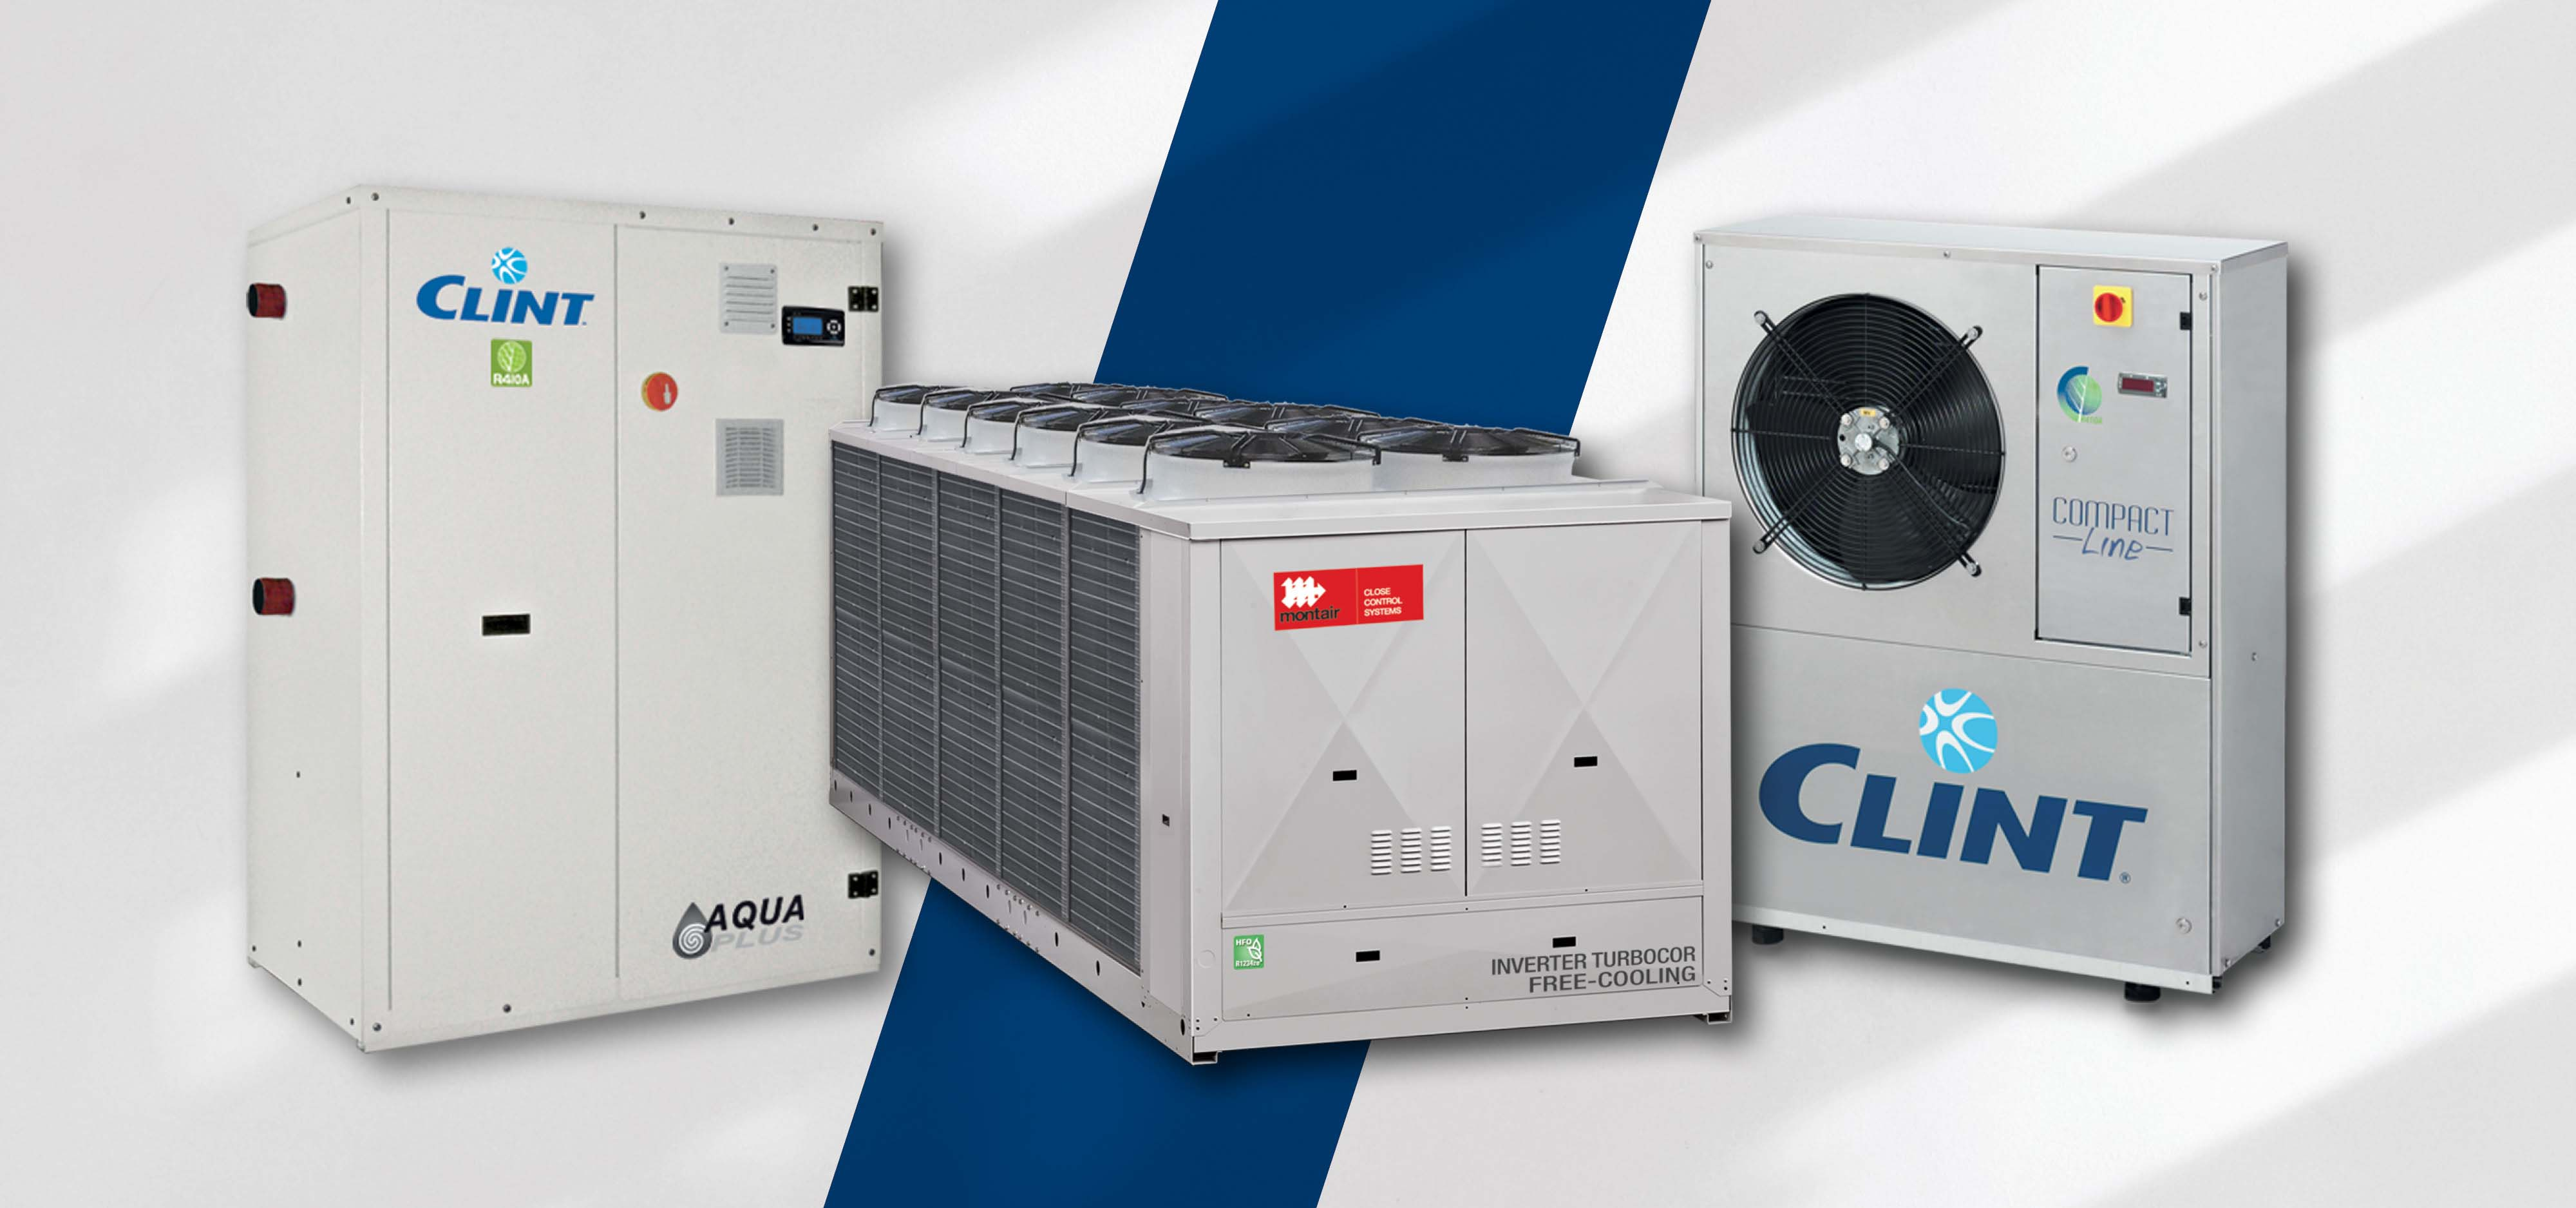 What is a chiller unit?